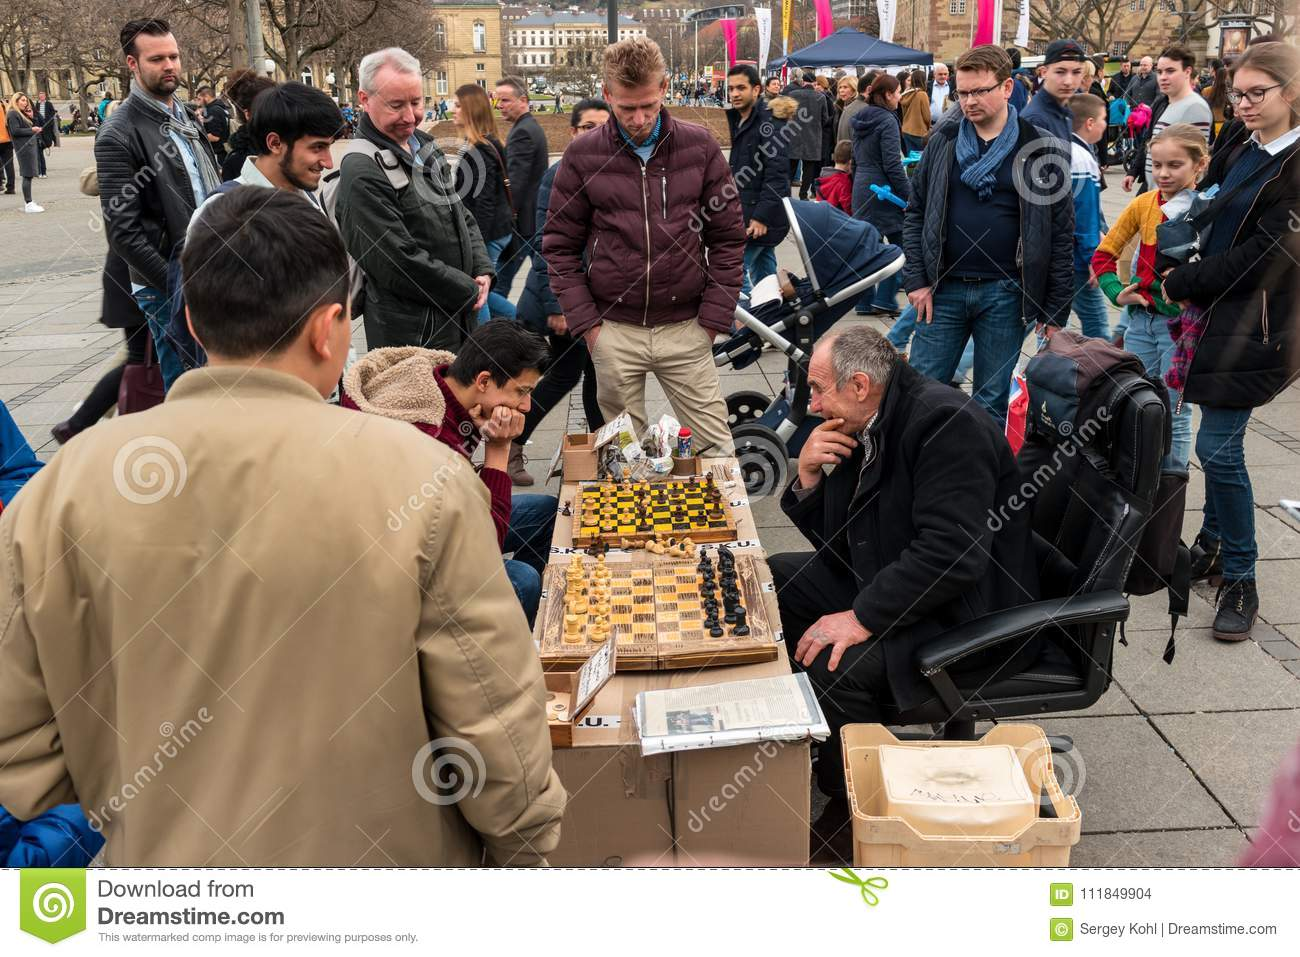 Public Chess Game By Amateurs On The Central Historical Street Of Koenigstrasse King Street